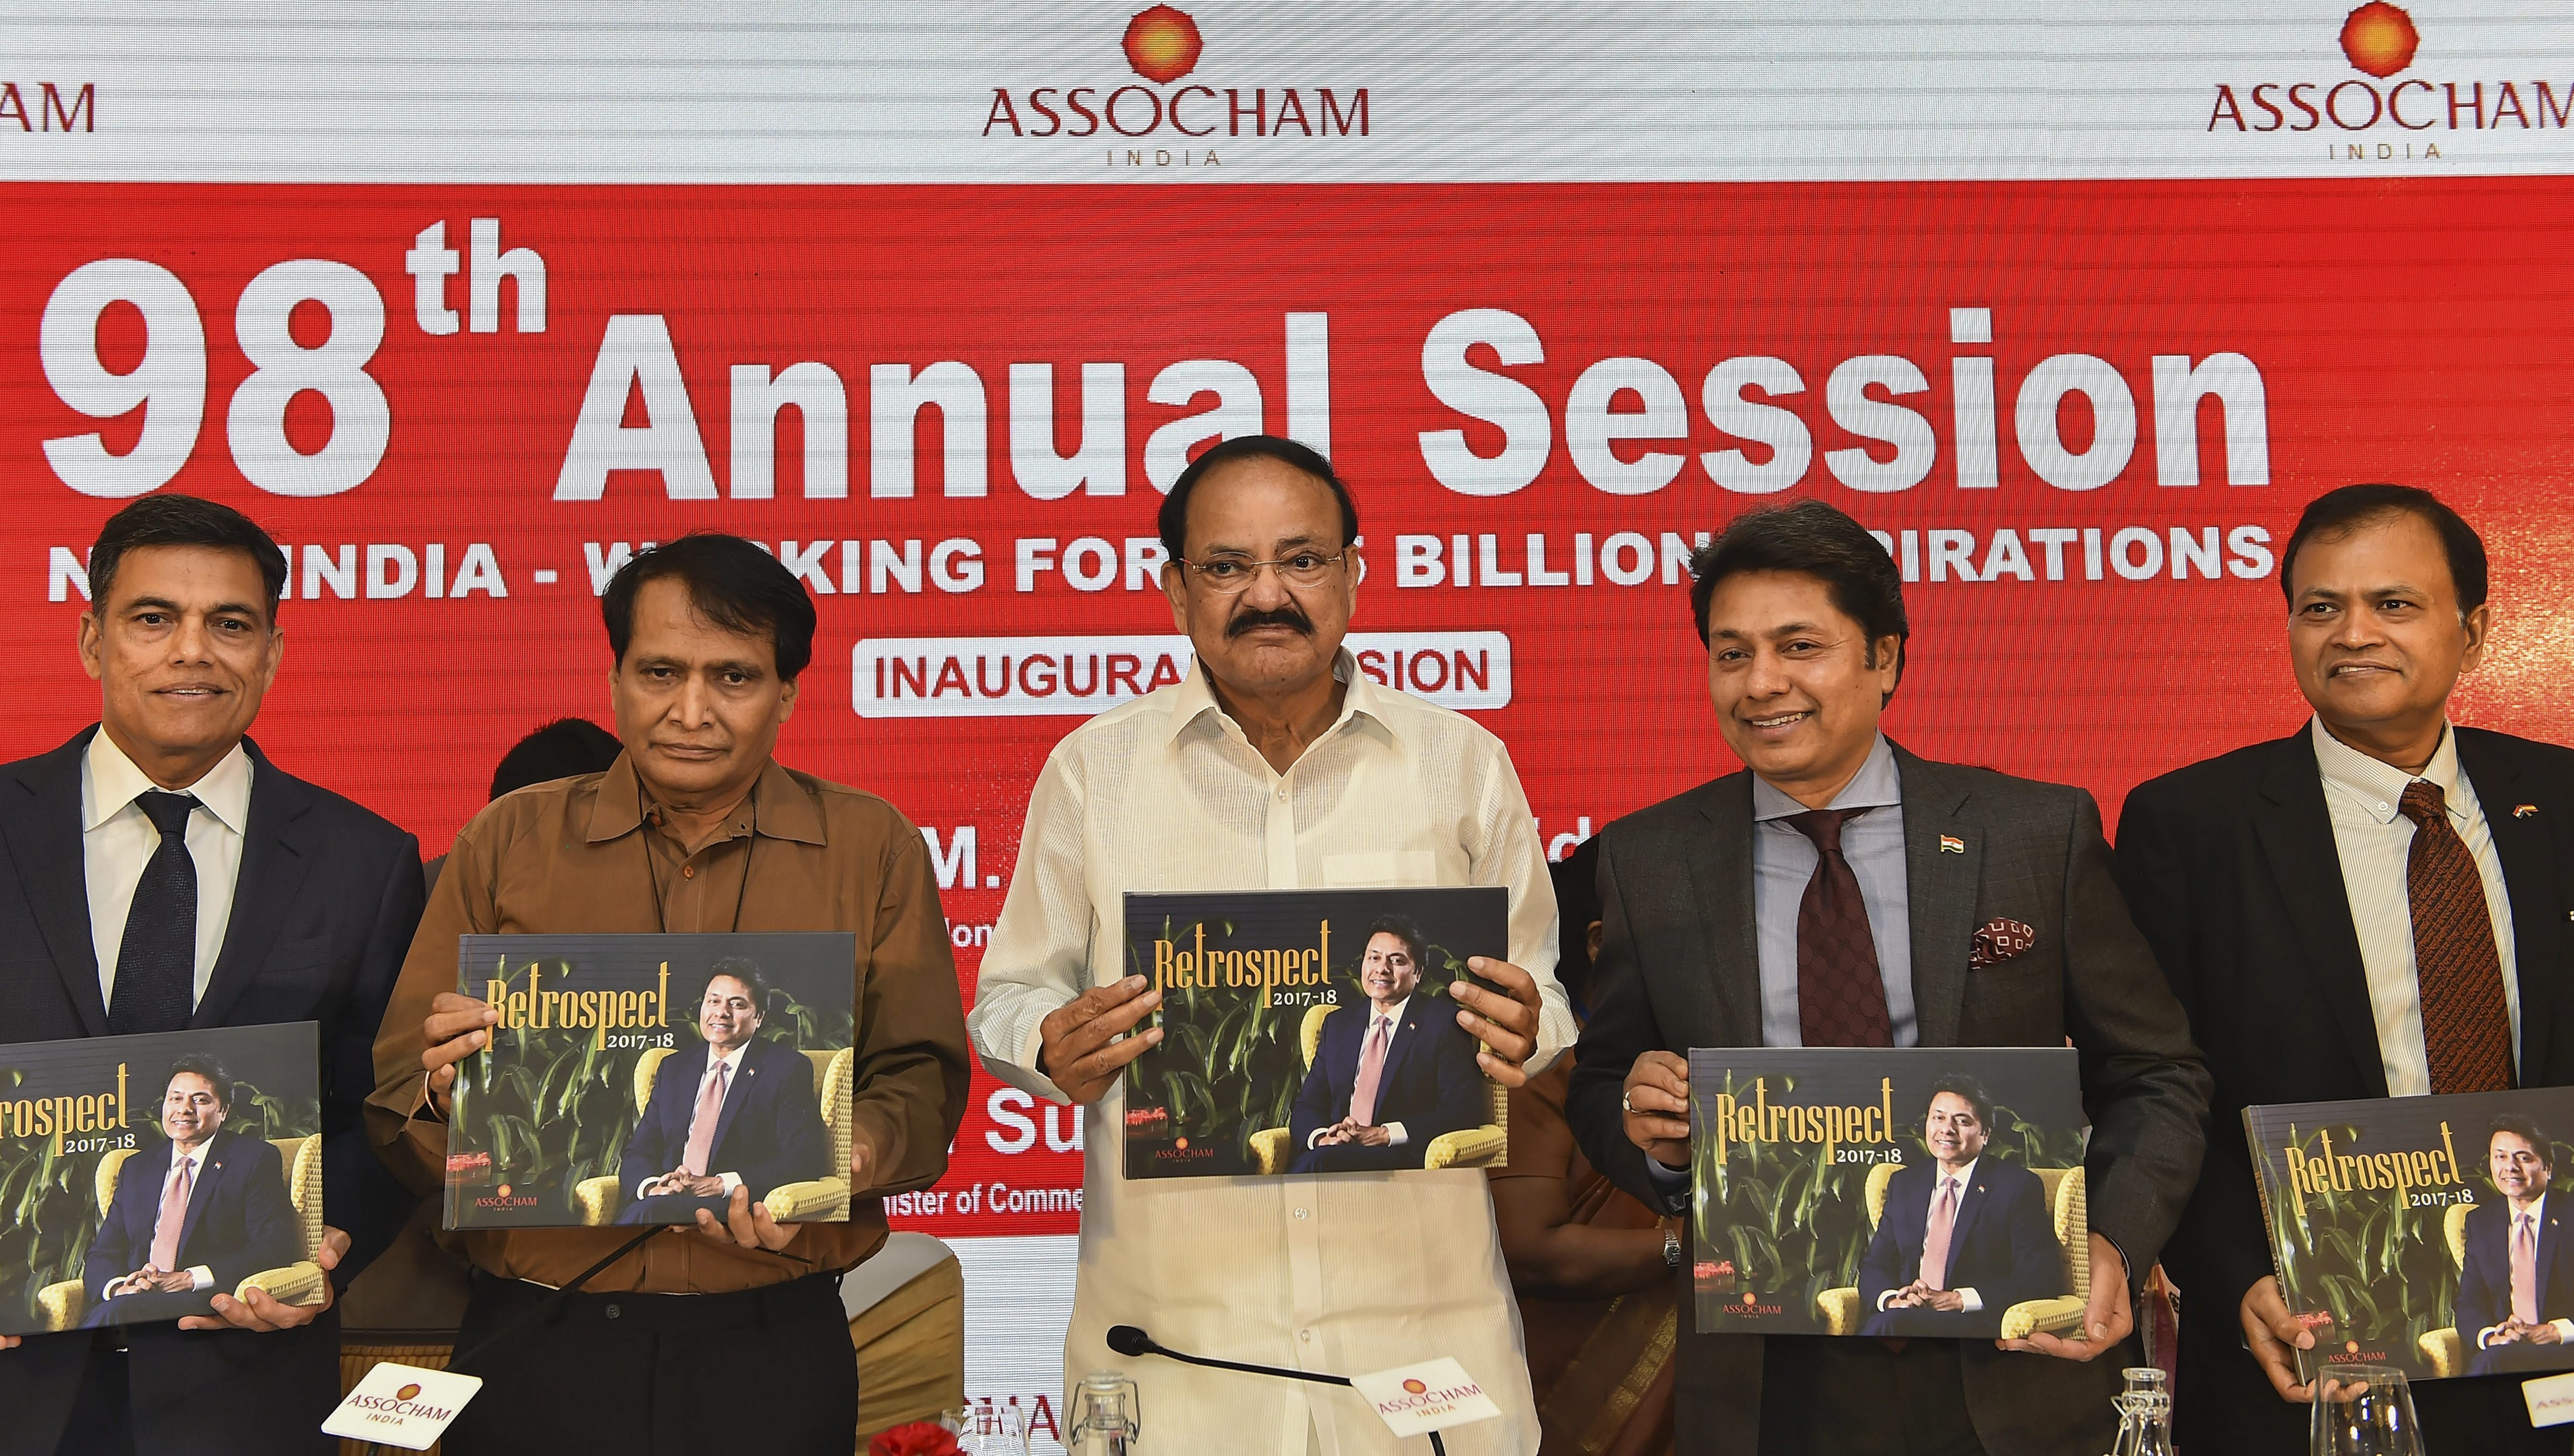 Vice President M Venkaiah Naidu (C) flanked by Commerce Minister Suresh Prabhu (L) and ASSOCHAM President Sandeep Jajodia release the orgainsation's 'Retrospect 2017-18' during the 98th Annual Session